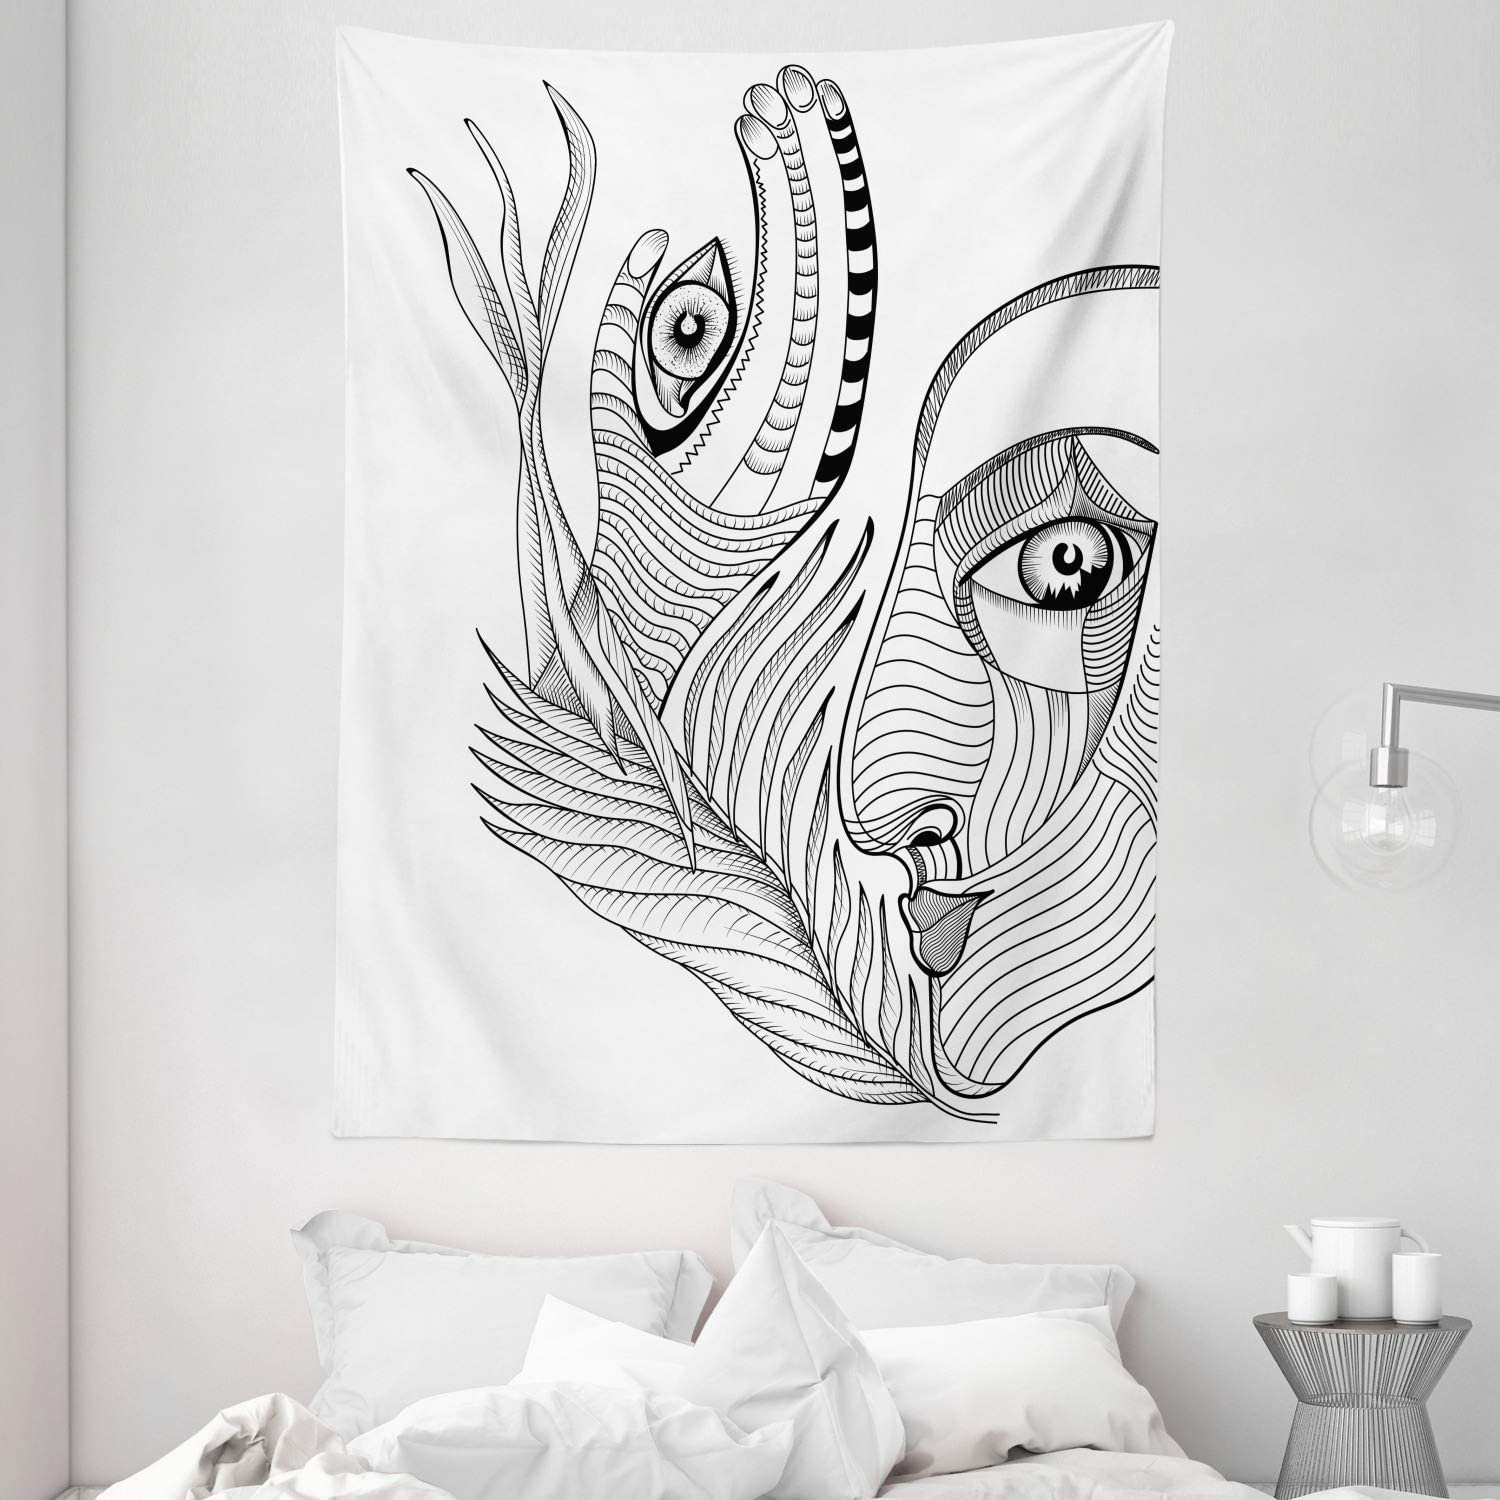 Ambesonne Psychedelic Tapestry, Trippy Abstract Surreal Human Faces Mehndi Tattoo Style Art, Wall Hanging for Bedroom Living Room Dorm Decor, 60